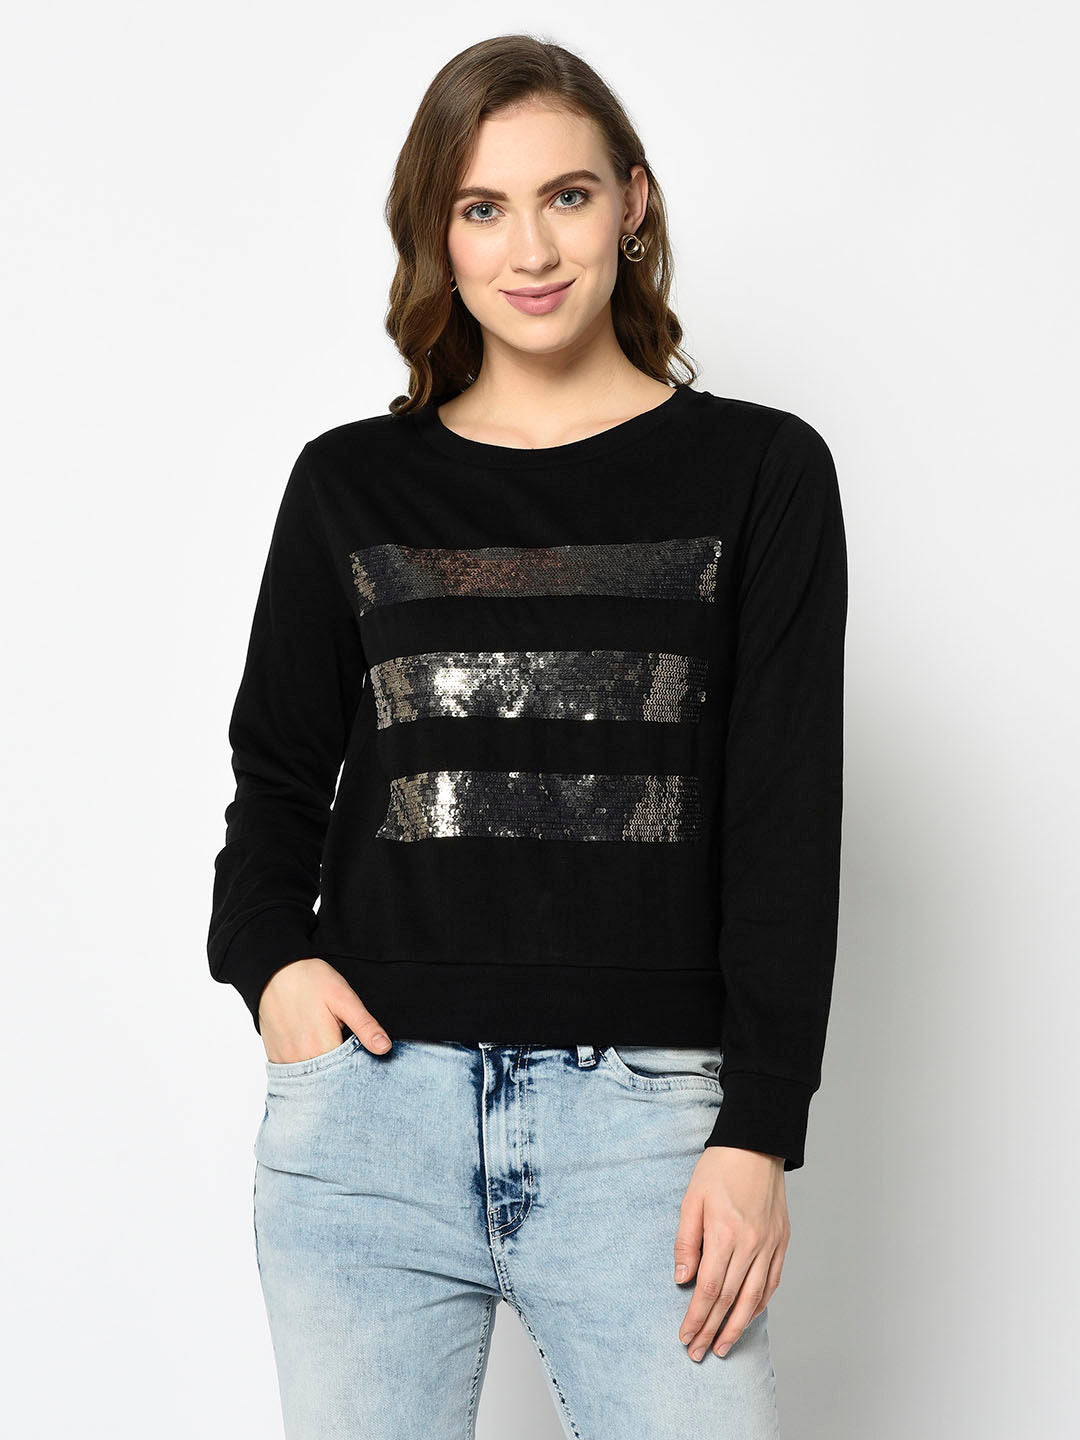 Black Sweatshirt with Dark Silver Sequences - Avsoy